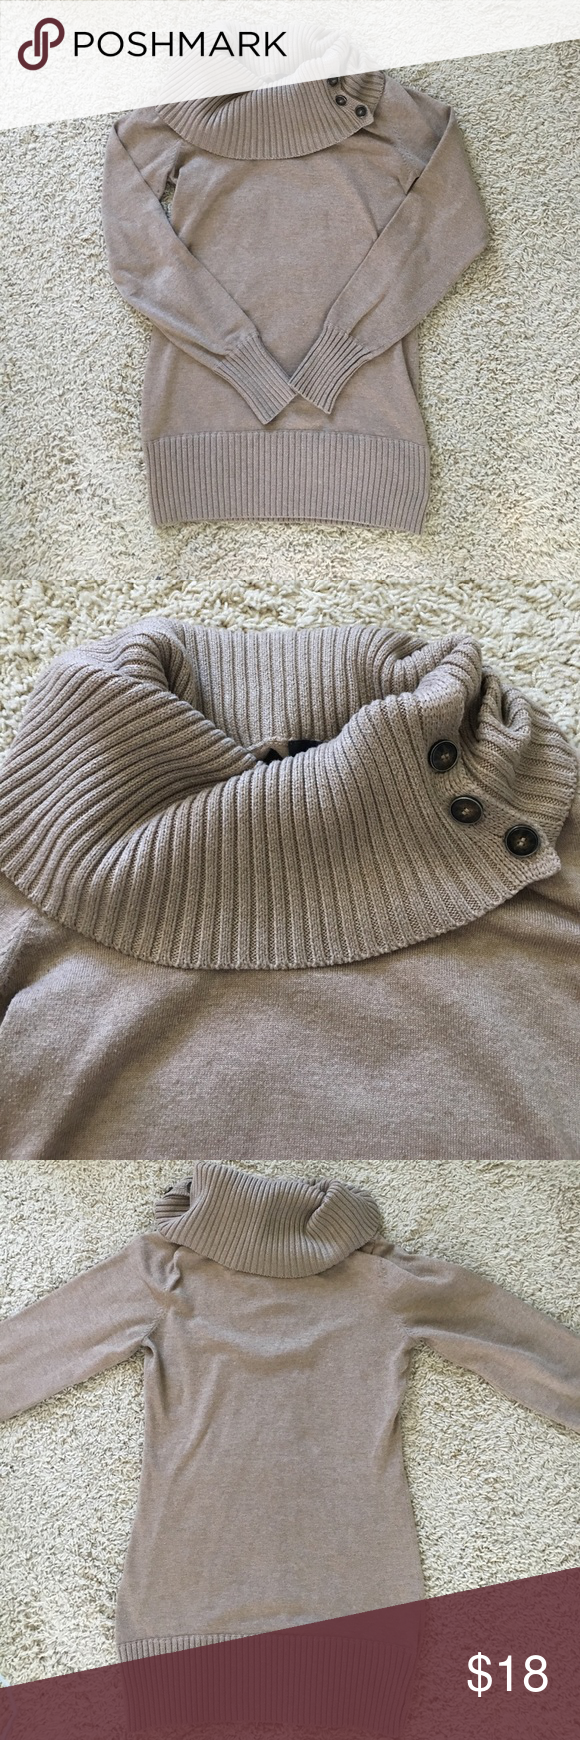 51a406a78e0e4 🔵Button Cowl neck sweater The limited tan sweater. Short dress/ long top.  Great with leggings, stockings or jeans. Like new condition!!!